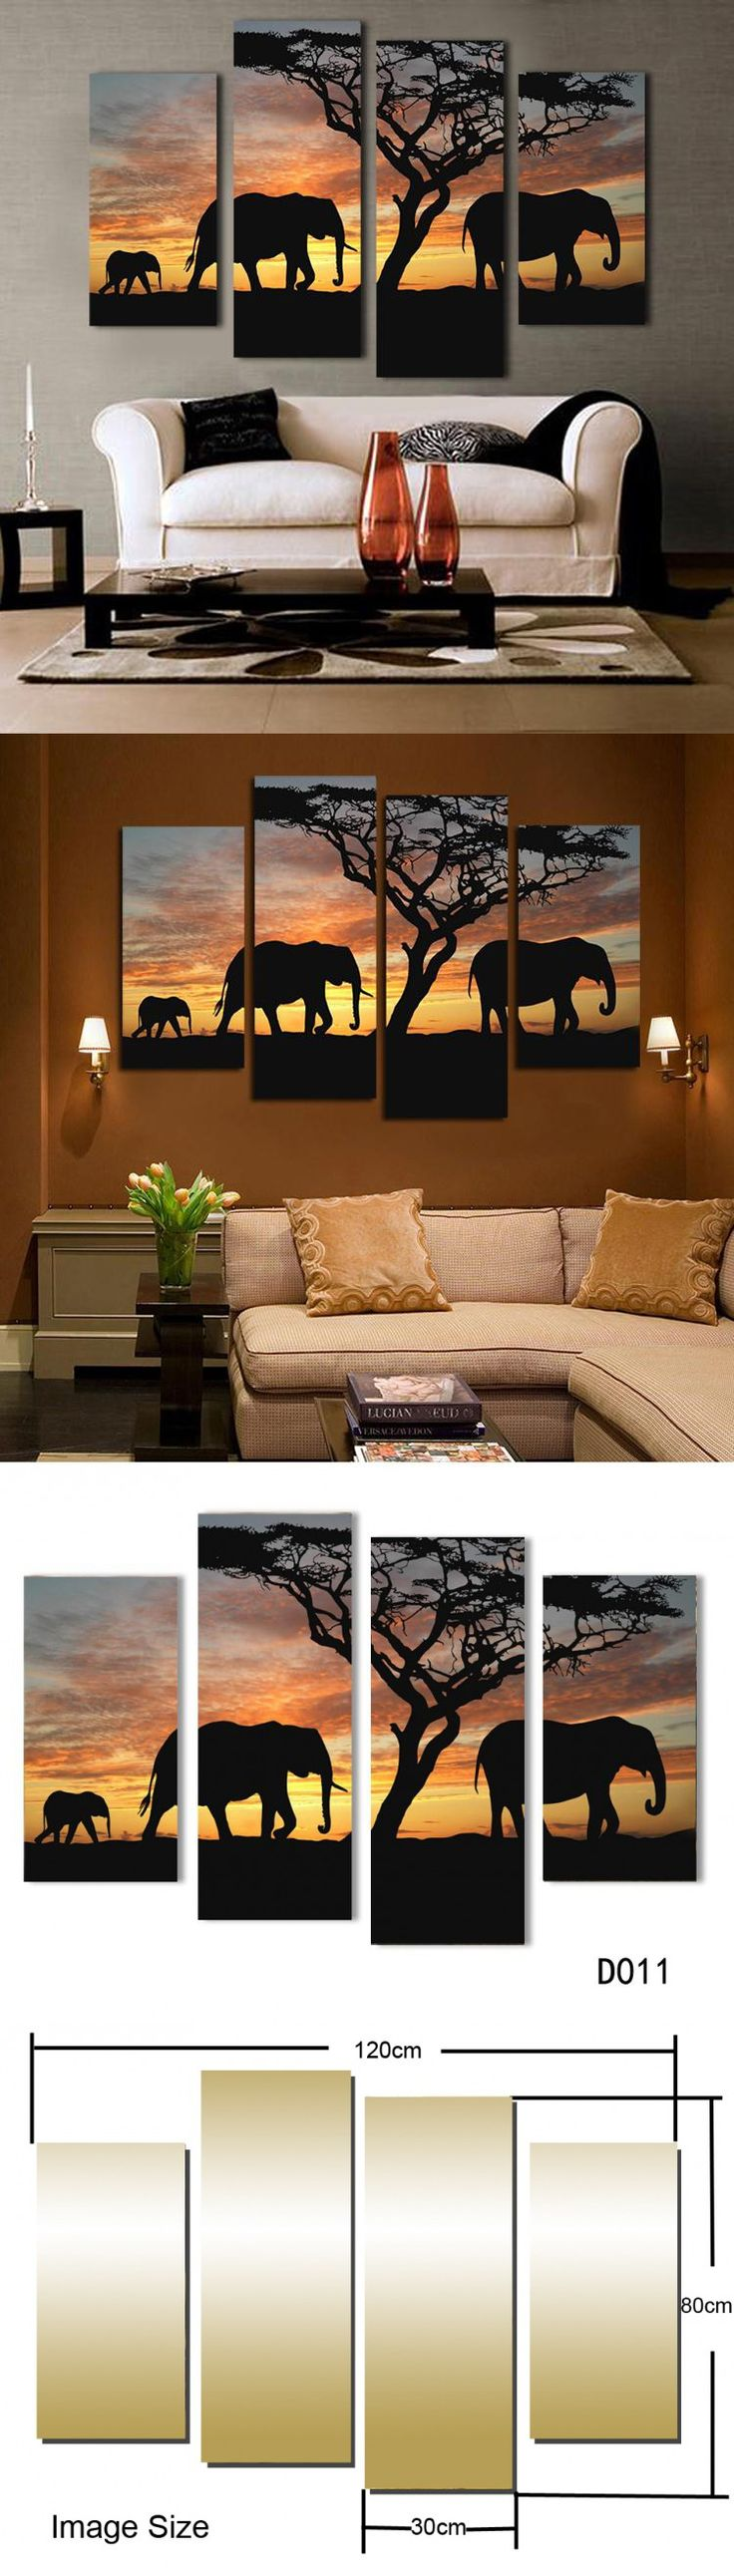 5 Ppcs Sunset Elephant Painting Canvas Wall Art Picture Home Decoration Living Room Print Modern Large